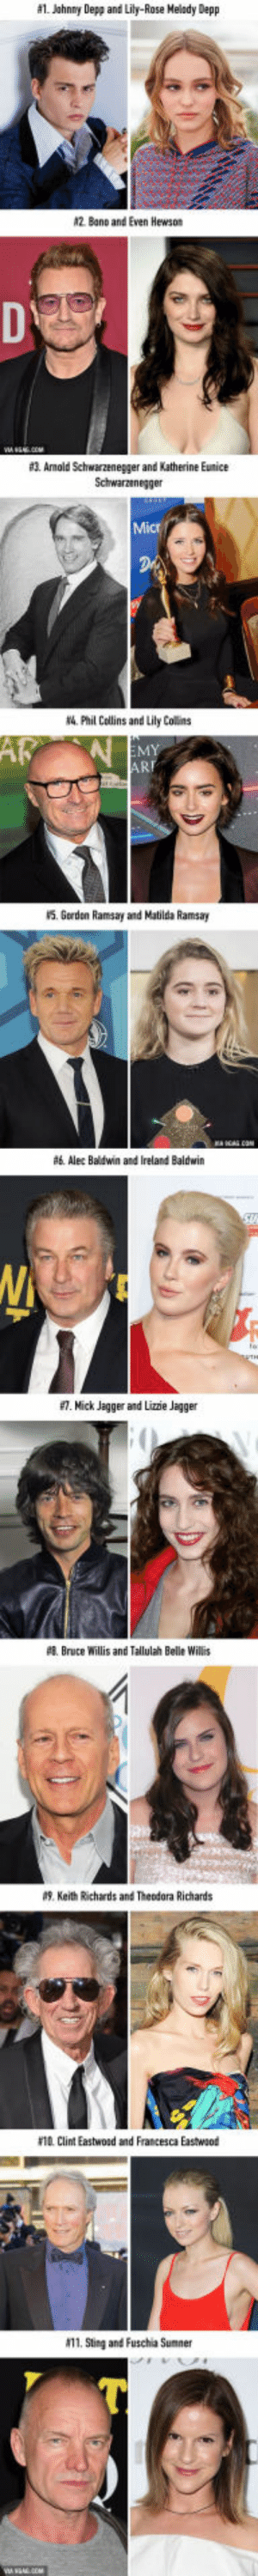 Arnold Schwarzenegger, Gordon Ramsay, and Johnny Depp:  #1. Johnny Depp and Lily-Rose Melody Depp  2 Bano and Even Hewsom  3. Arnold Schwarzenegger and Katherine Eunice  4 Phil Collins and Lily Colins  in  ART  เร, Gordon Ramsay and Matilda Ramsay  Alec Baldwin and Ireland Baldwin  #7. Mick Jagger and Lizzie Jagger  #8. Bruce Willis and Tallulah Belle Willis  9. Keith Richards and Theodora Richards  O. Clint Eastwond and Francesca Eastwaod  11. Sting and Fuschia Sumner 11 famous daughters who inherited their fathers' charm